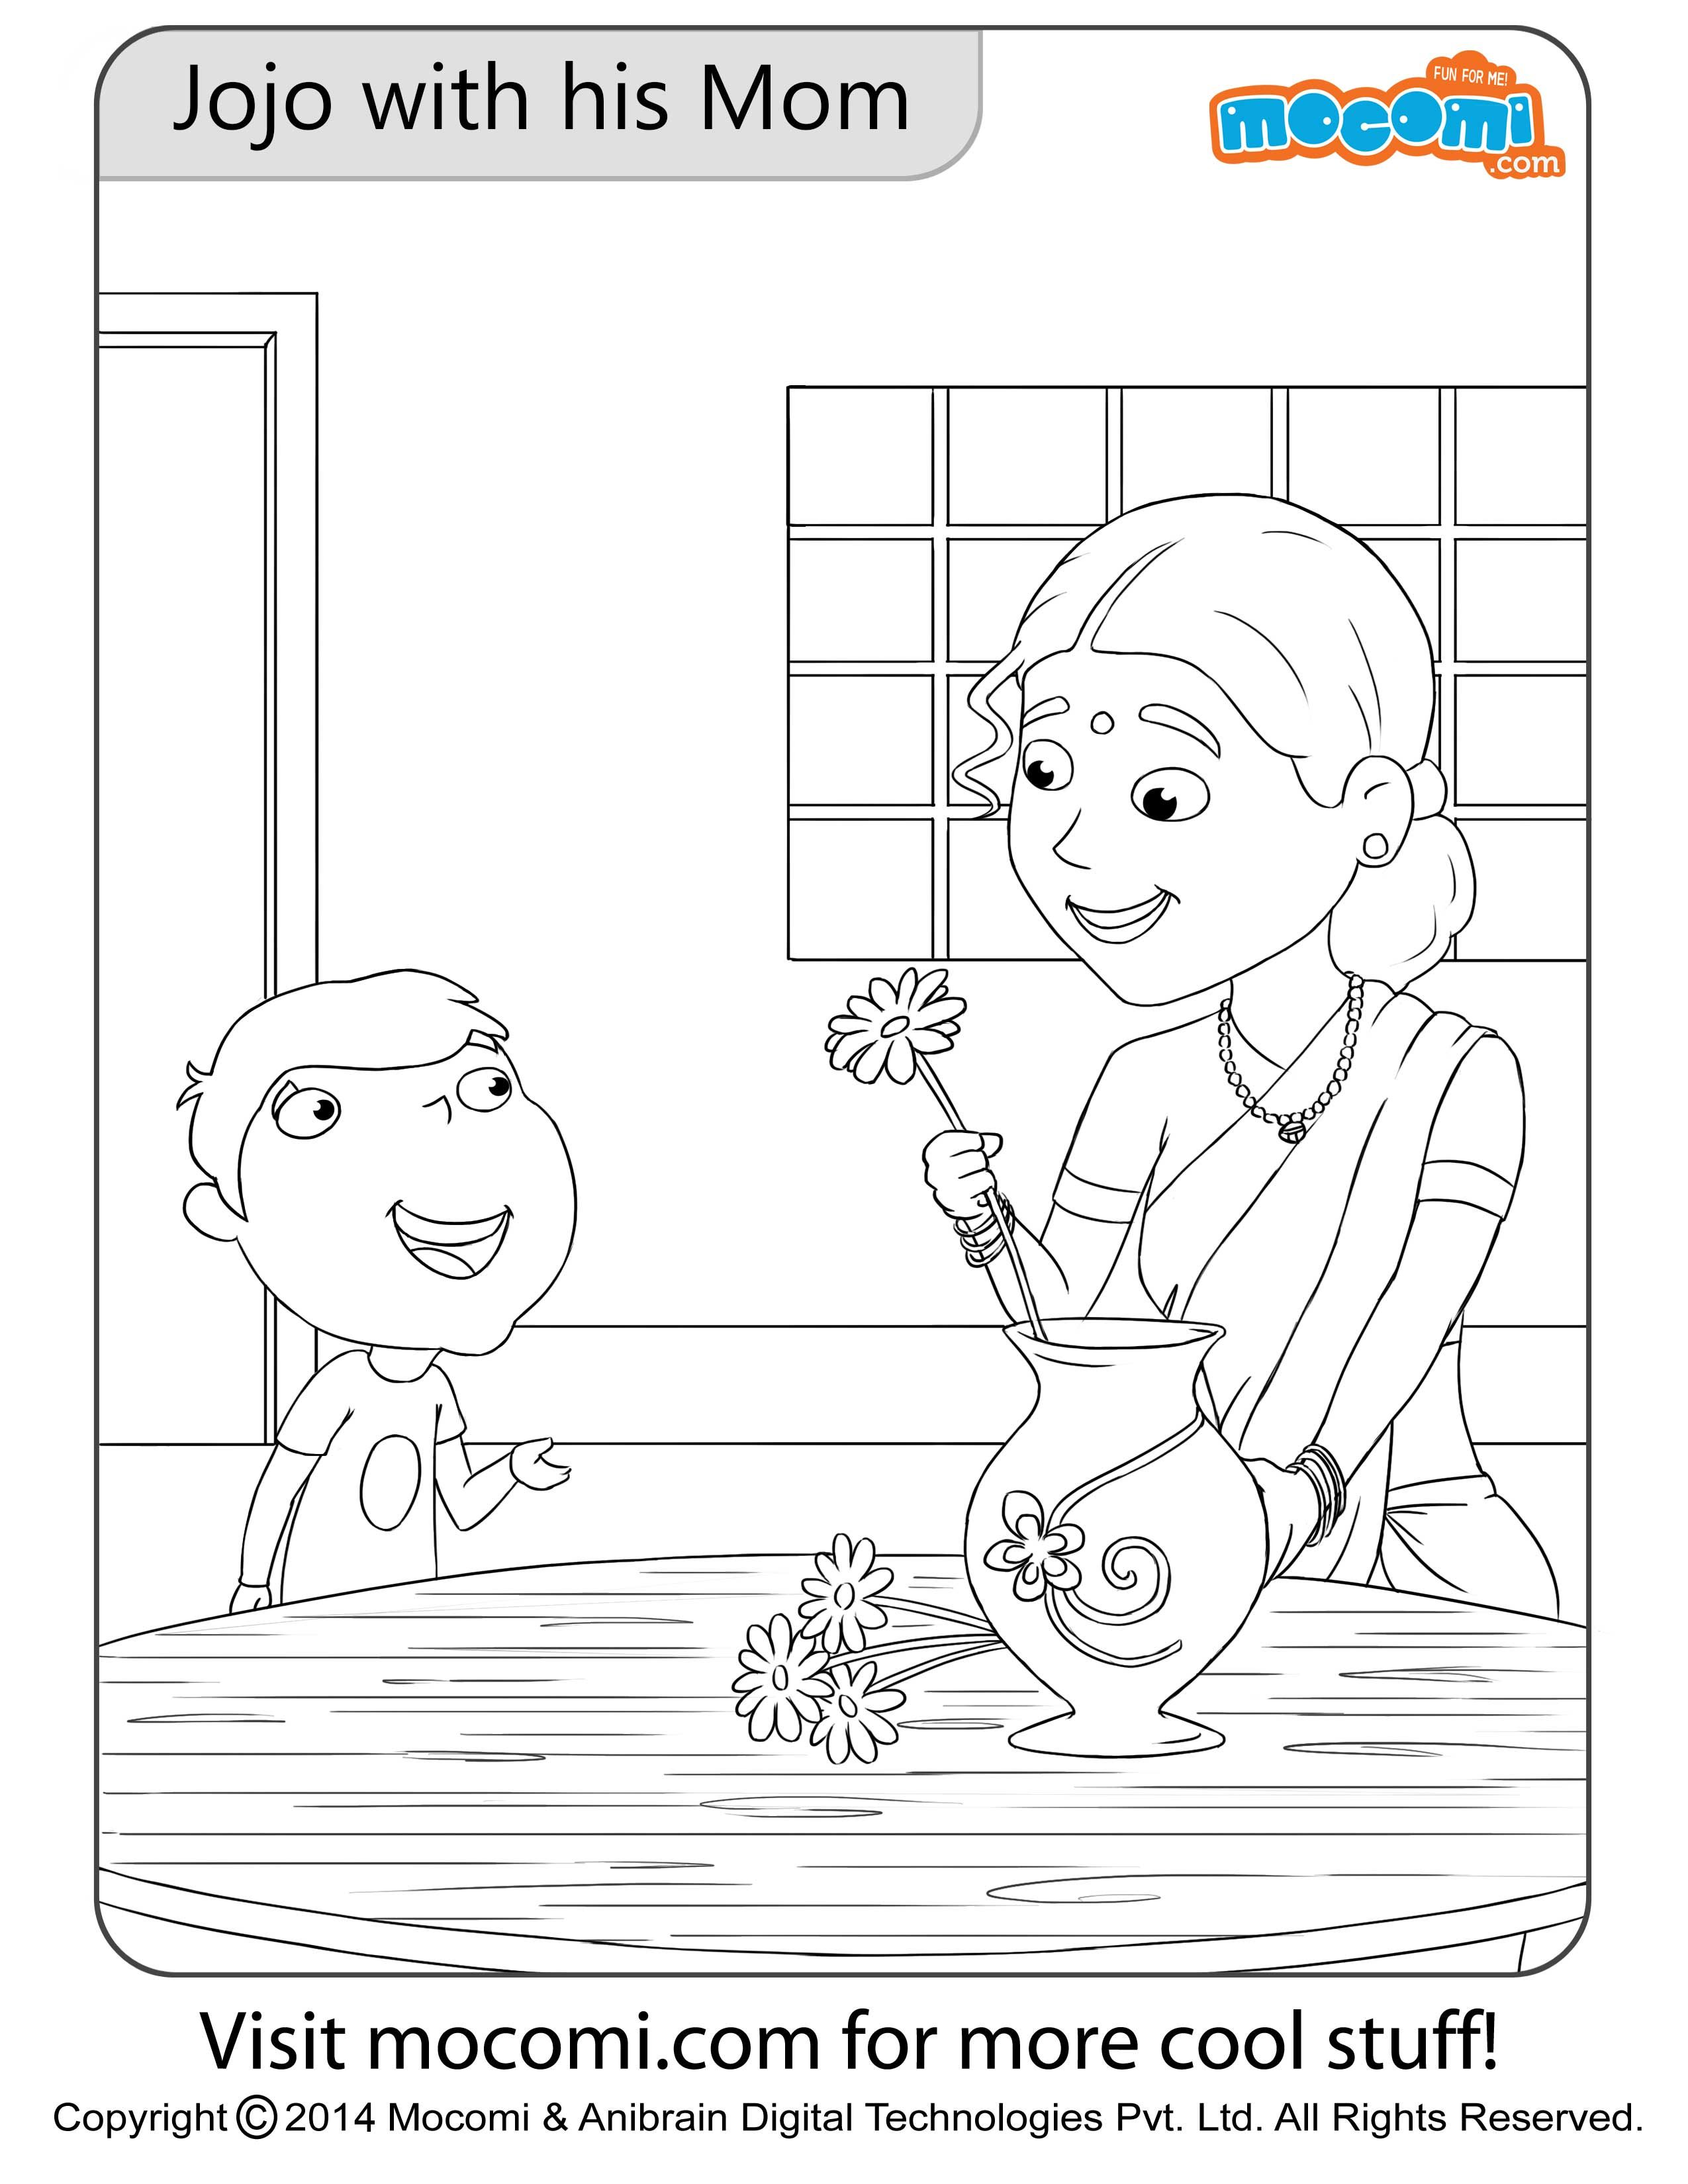 jojo with his mom online jojo colouring page for kids free printable coloring pages for a variety of themes that you can print out and color at home